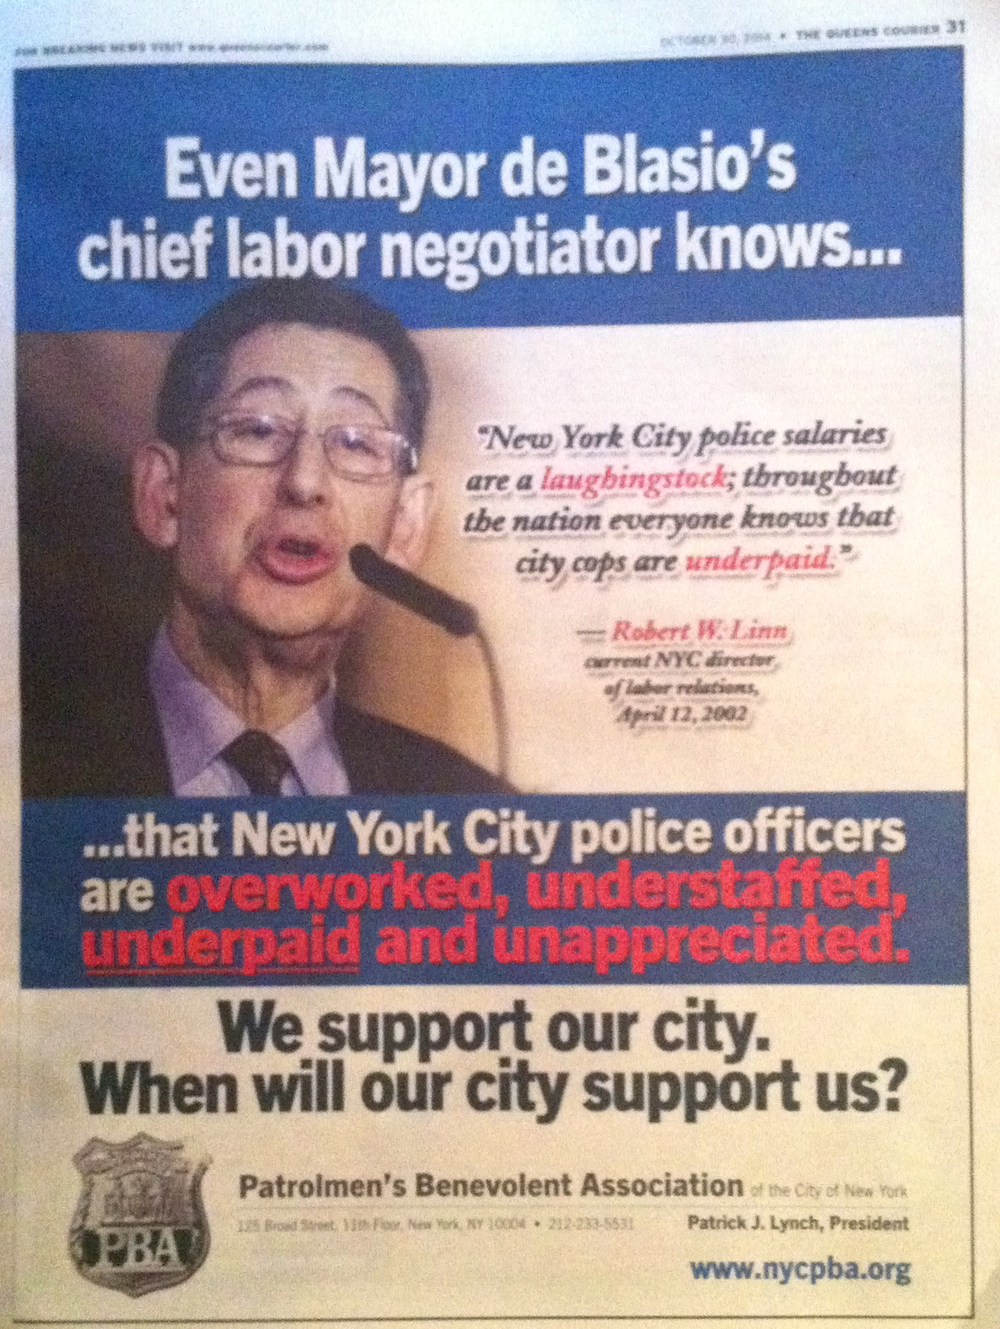 A full-page advertisement in the Oct. 30, 2014 edition of The Queens Courier.  The Patrolemen's Benevolent Association is waging a public relations war with the de Blasio administration over a new union contract.  Source :  The Queens Courier/Photograph by Progress Queens